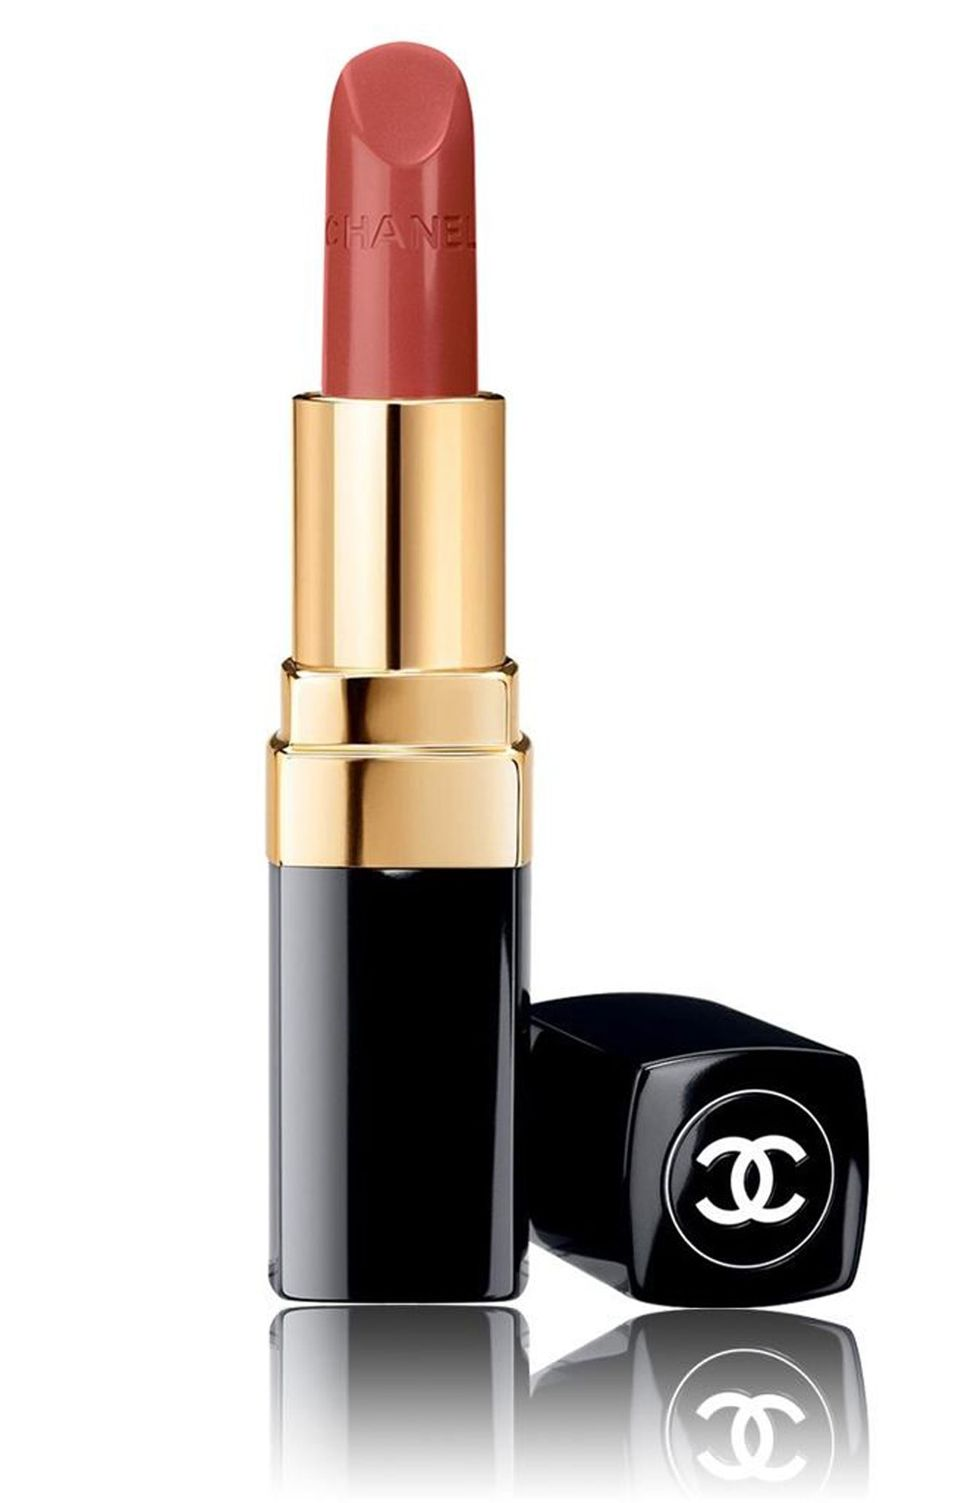 For The Lipstick Queen